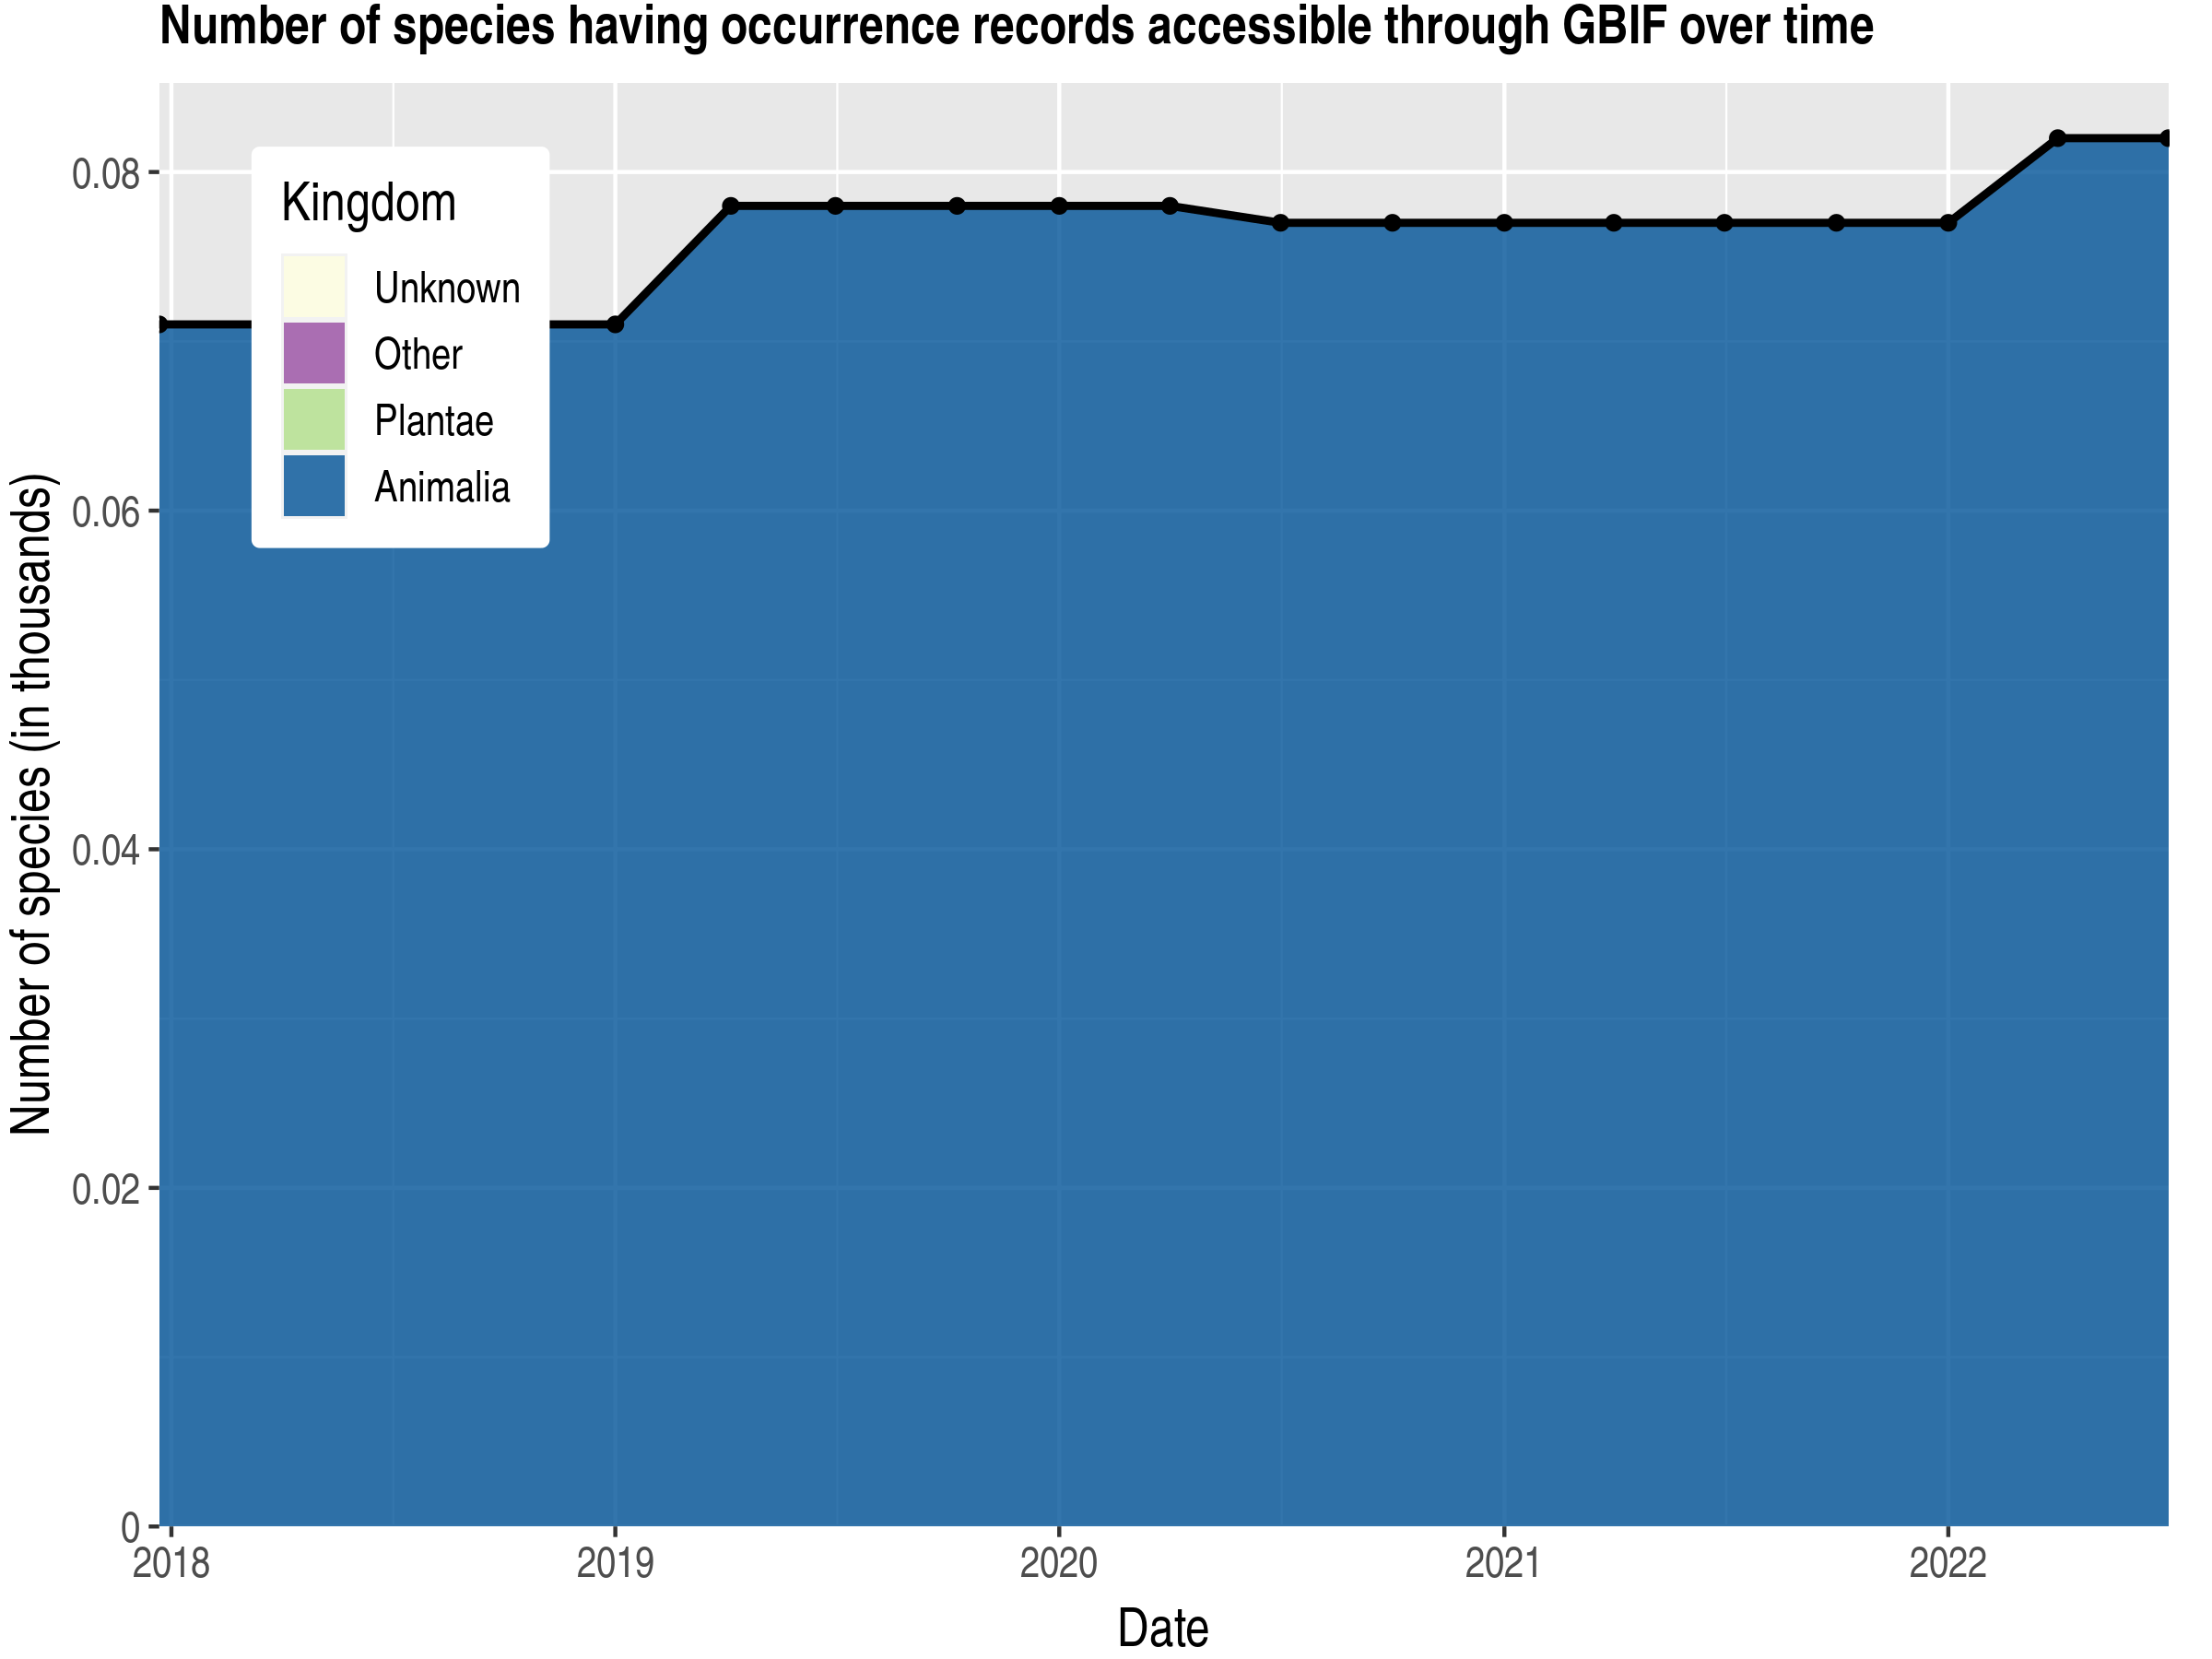 Data trend of species count by kingdom published Saint Helena, Ascension and Tristan da Cunha